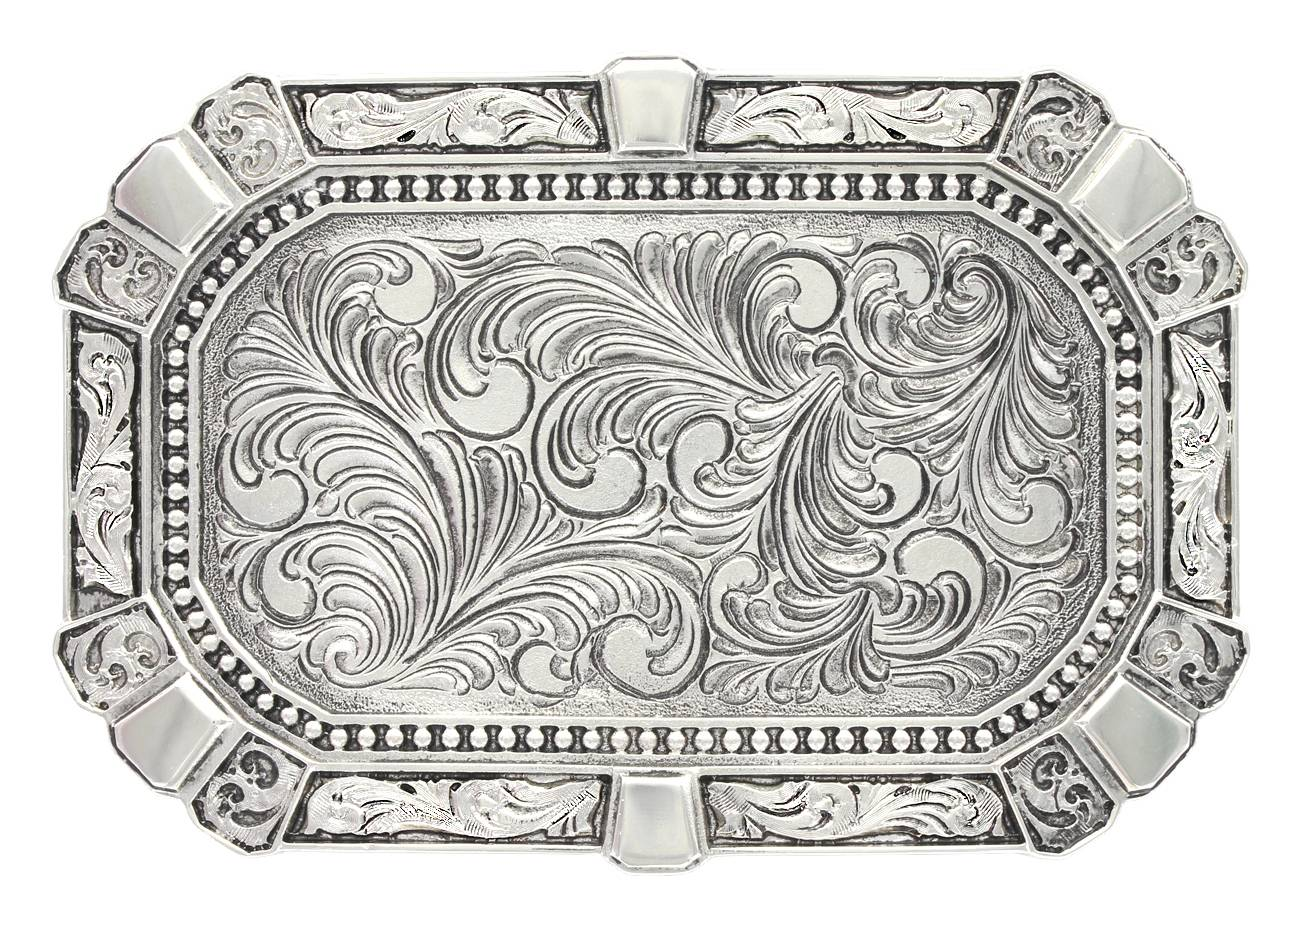 Montana Silversmiths Heritage Rounded Rectangular Feathered Attitude Buckle